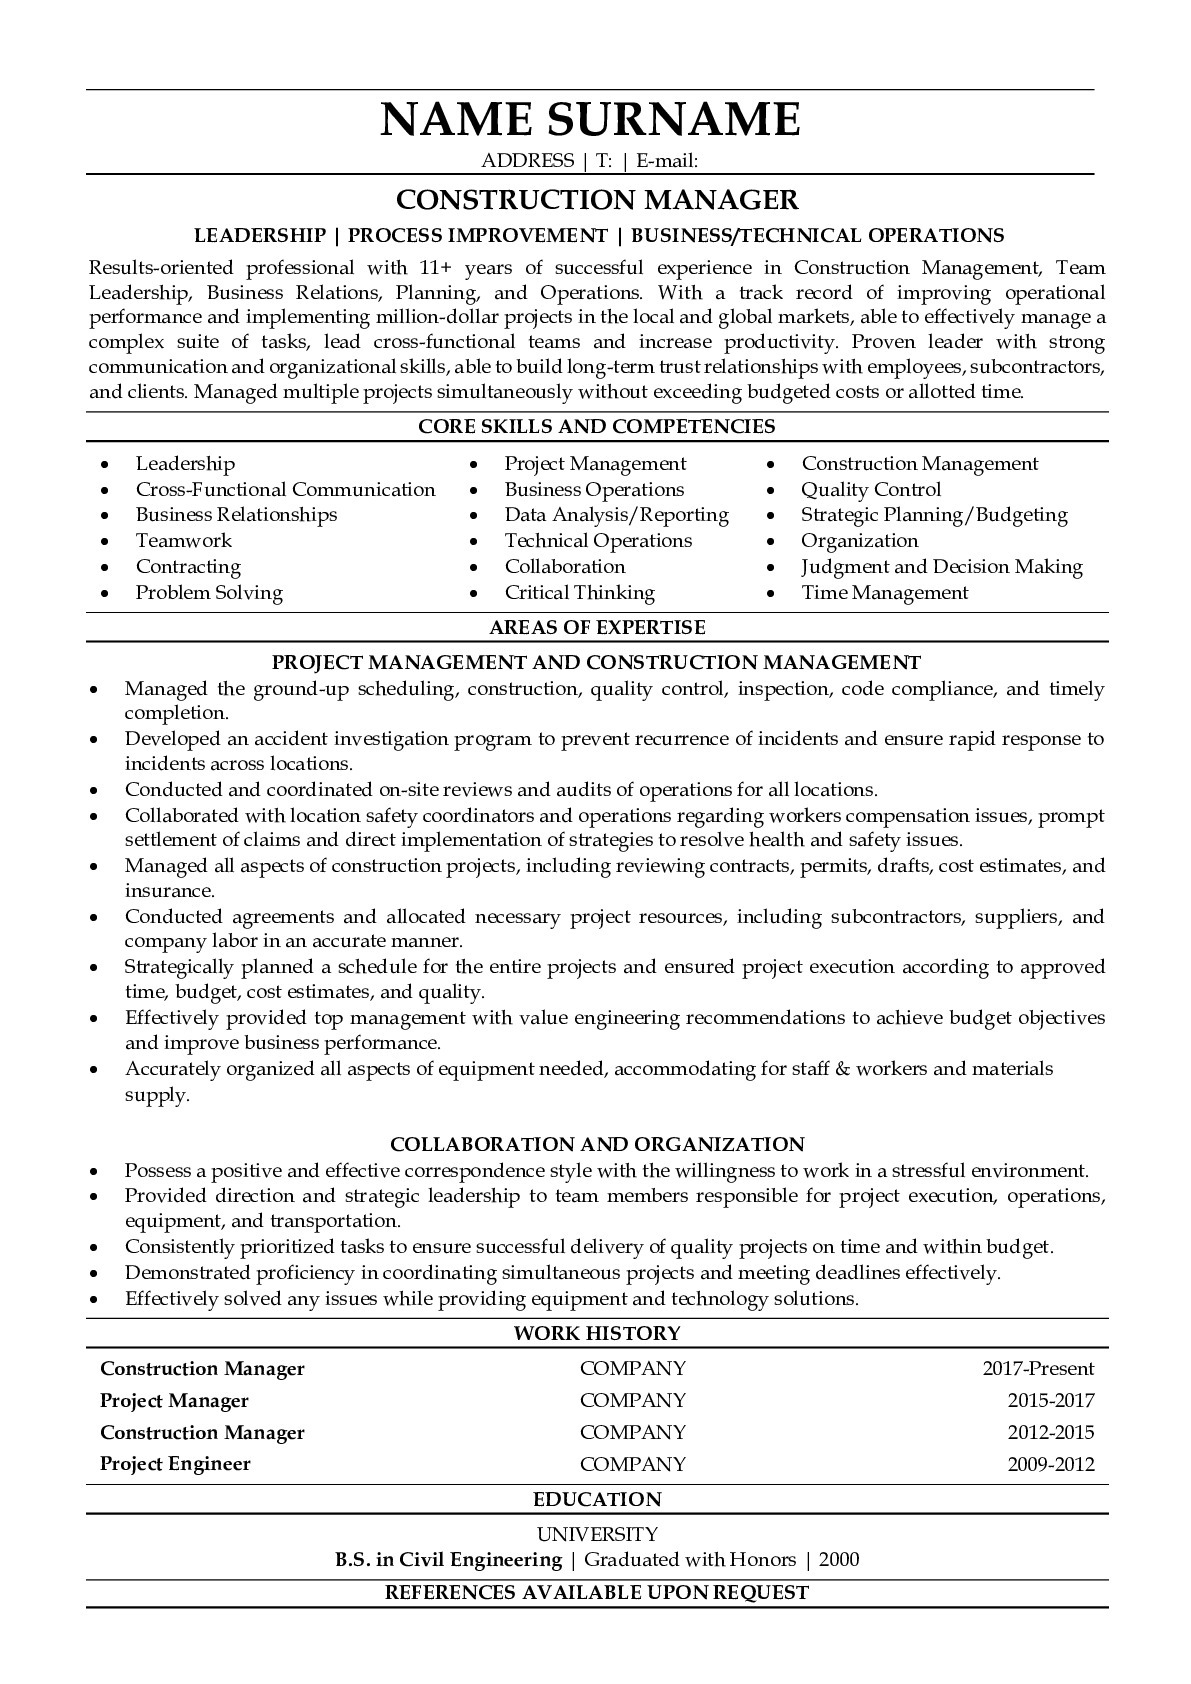 Resume Example for Construction Manager